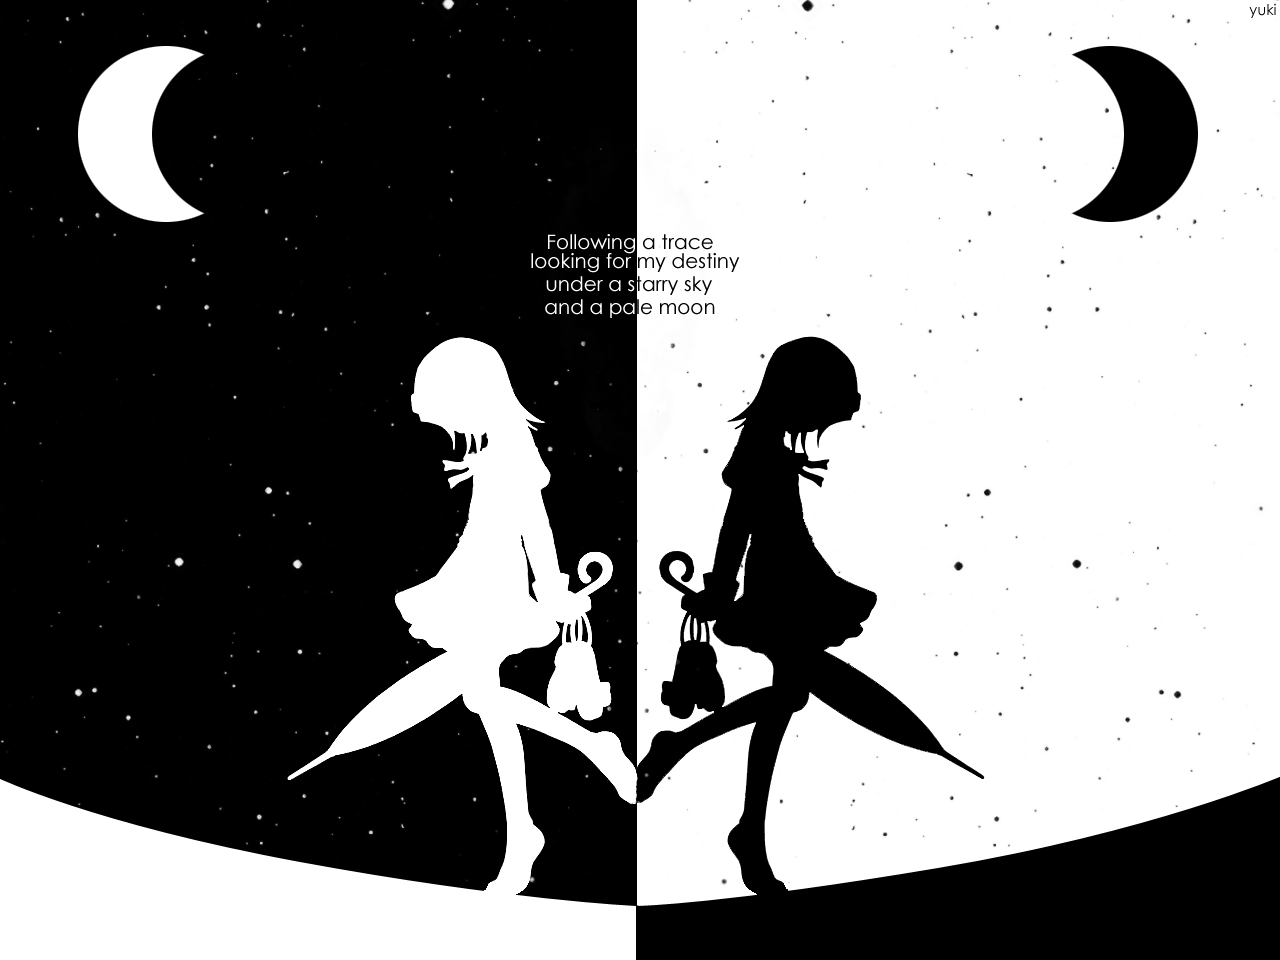 backgrounds black and white anime hd hdblackcom with wallpaper of